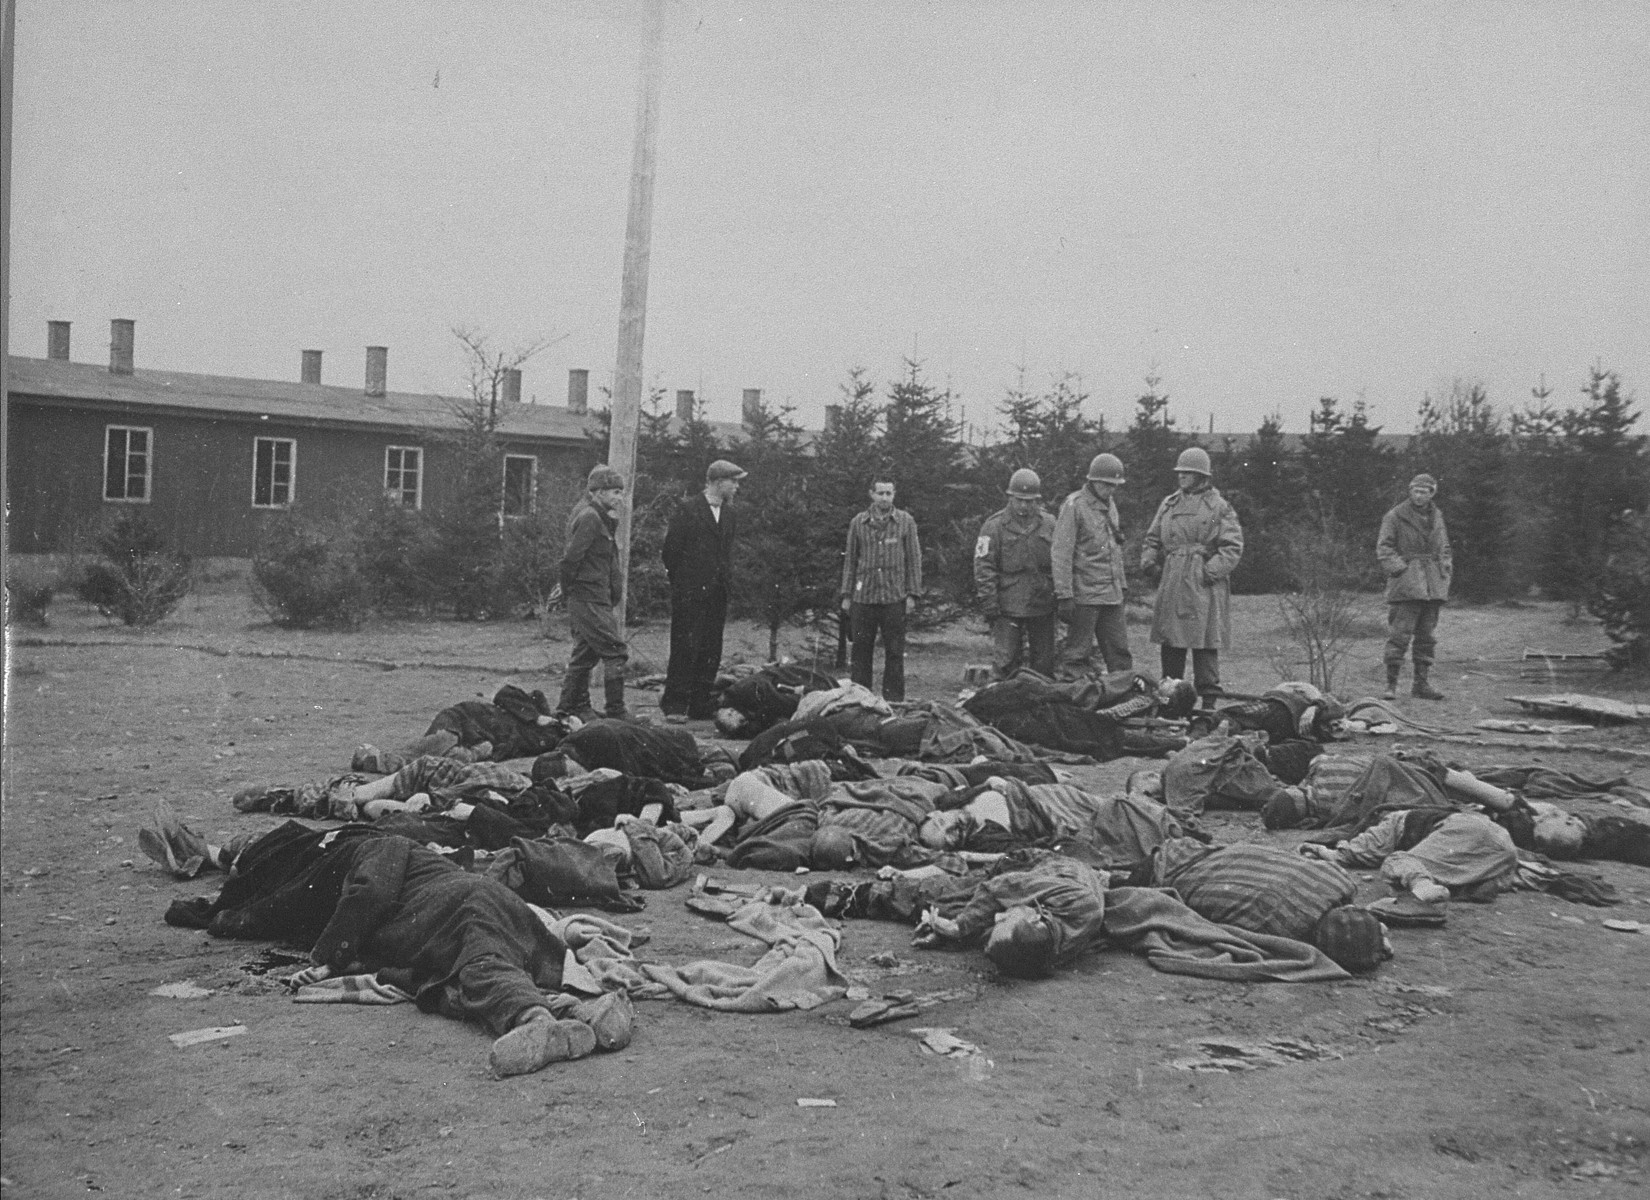 American soldiers and Ohrdruf survivors view the bodies of prisoners who were shot by the SS prior to the evacuation of the camp.